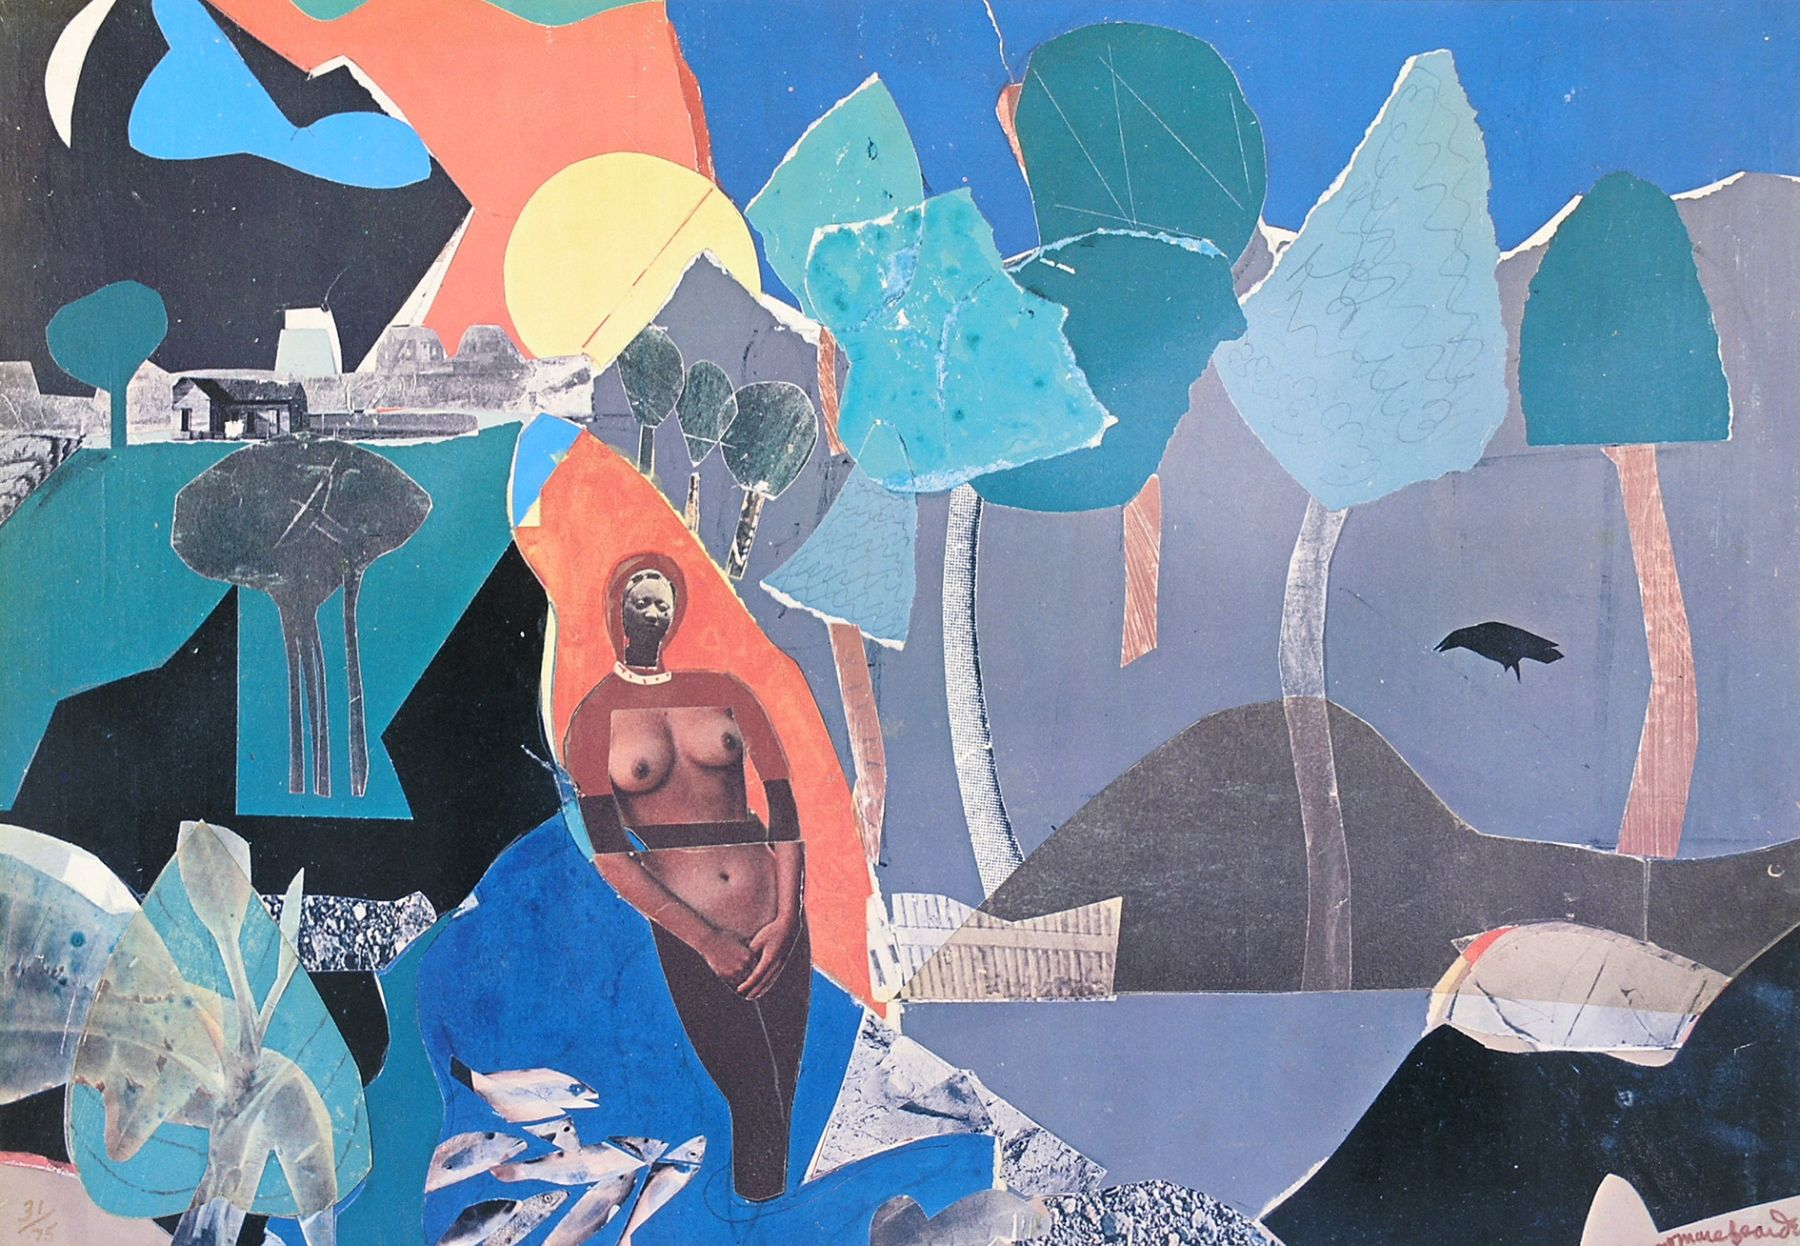 Romare Bearden, Memories, 1975, multiple collage, 14 x 20 inches